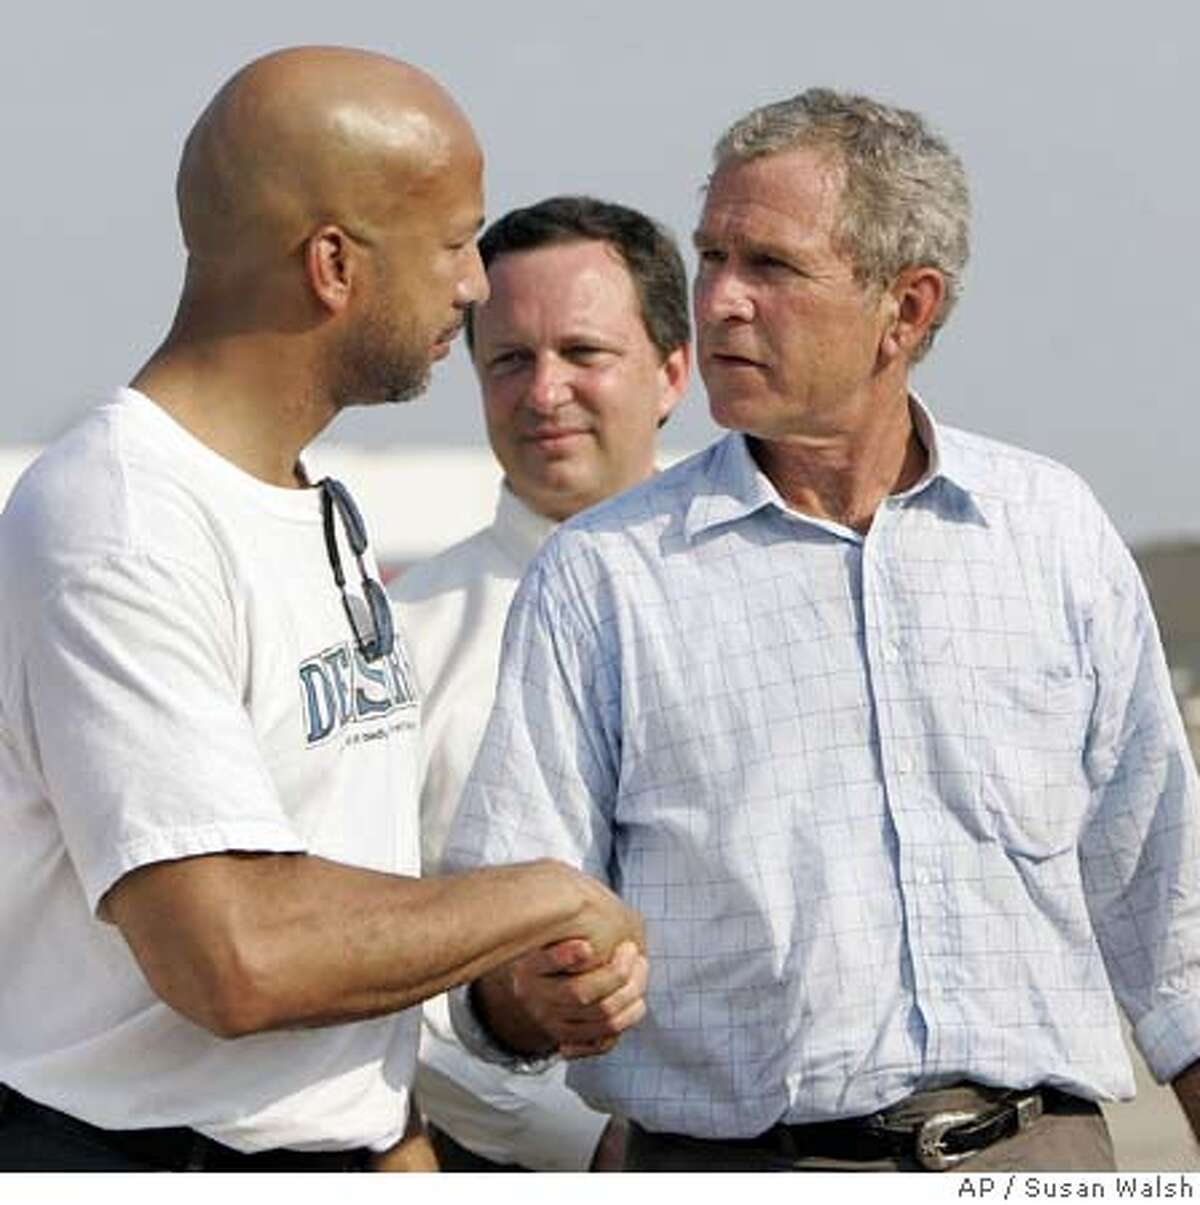 President Bush meets New Orleans mayor Ray Nagin following a news conference at the Louis Armstrong New Orleans International Airport, Friday, Sept. 2, 2005. Bush is touring the Gulf Coast communities battered by Hurricane Katrina, hoping to boost the spirits of increasingly desperate storm victims and exhausted rescuers. (AP Photo/Susan Walsh)